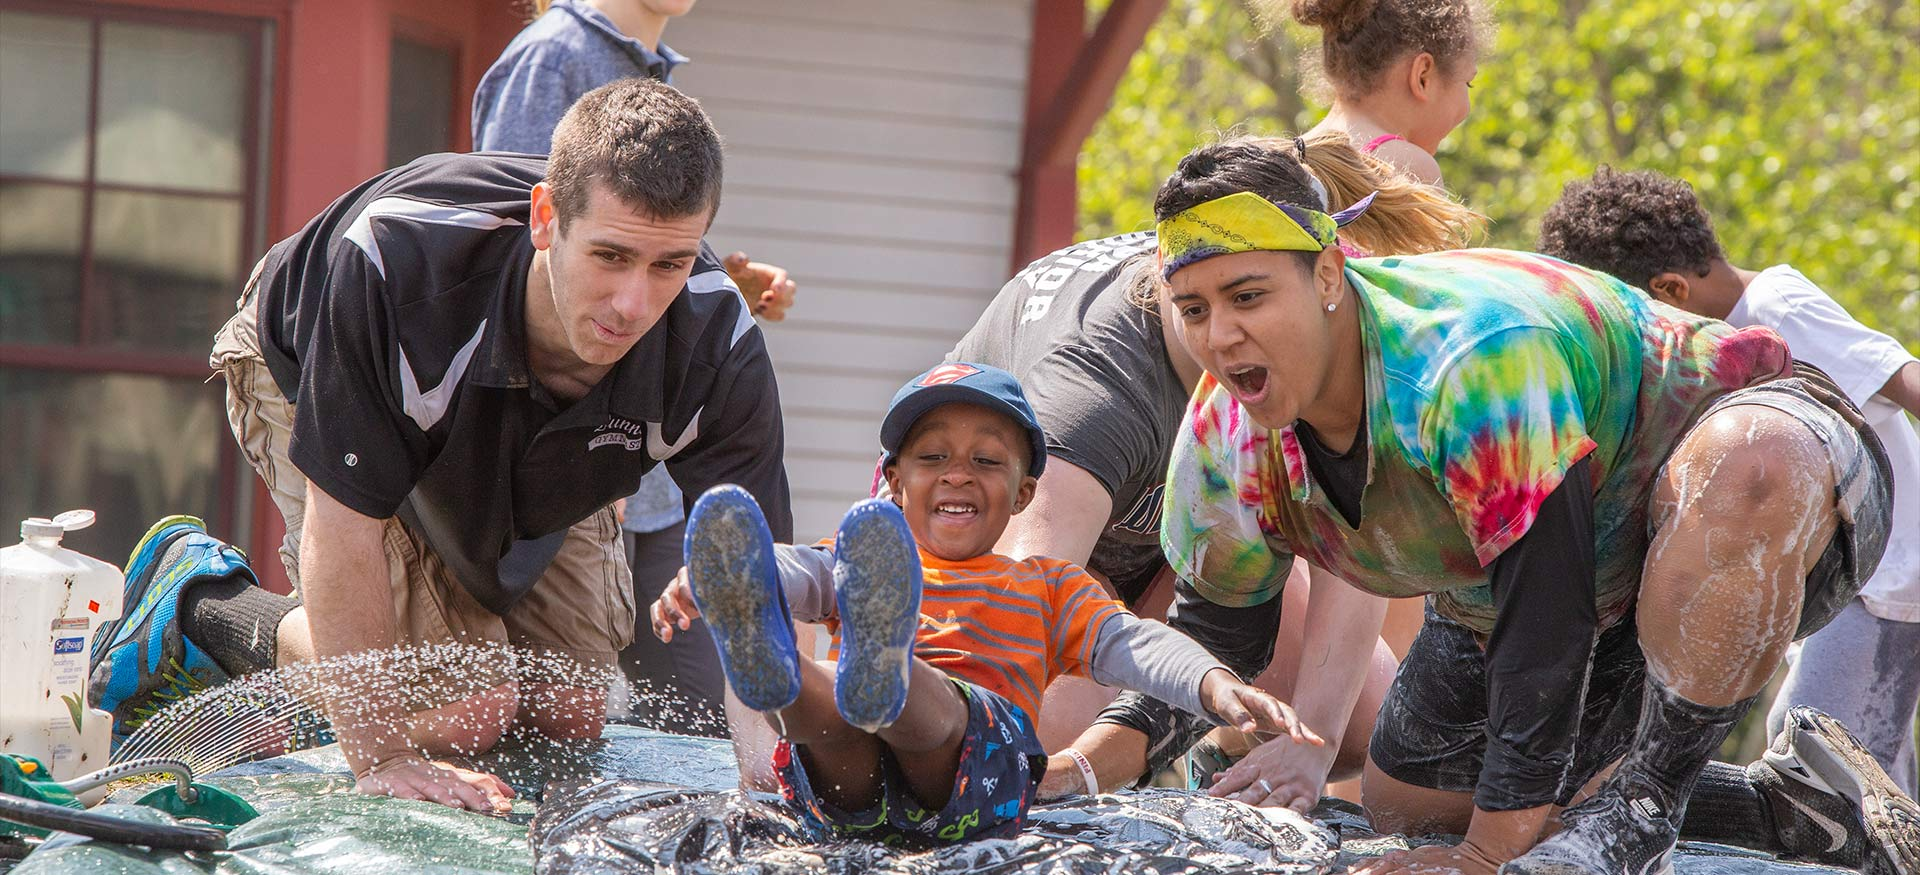 Students and children participating in the Fun Mudder